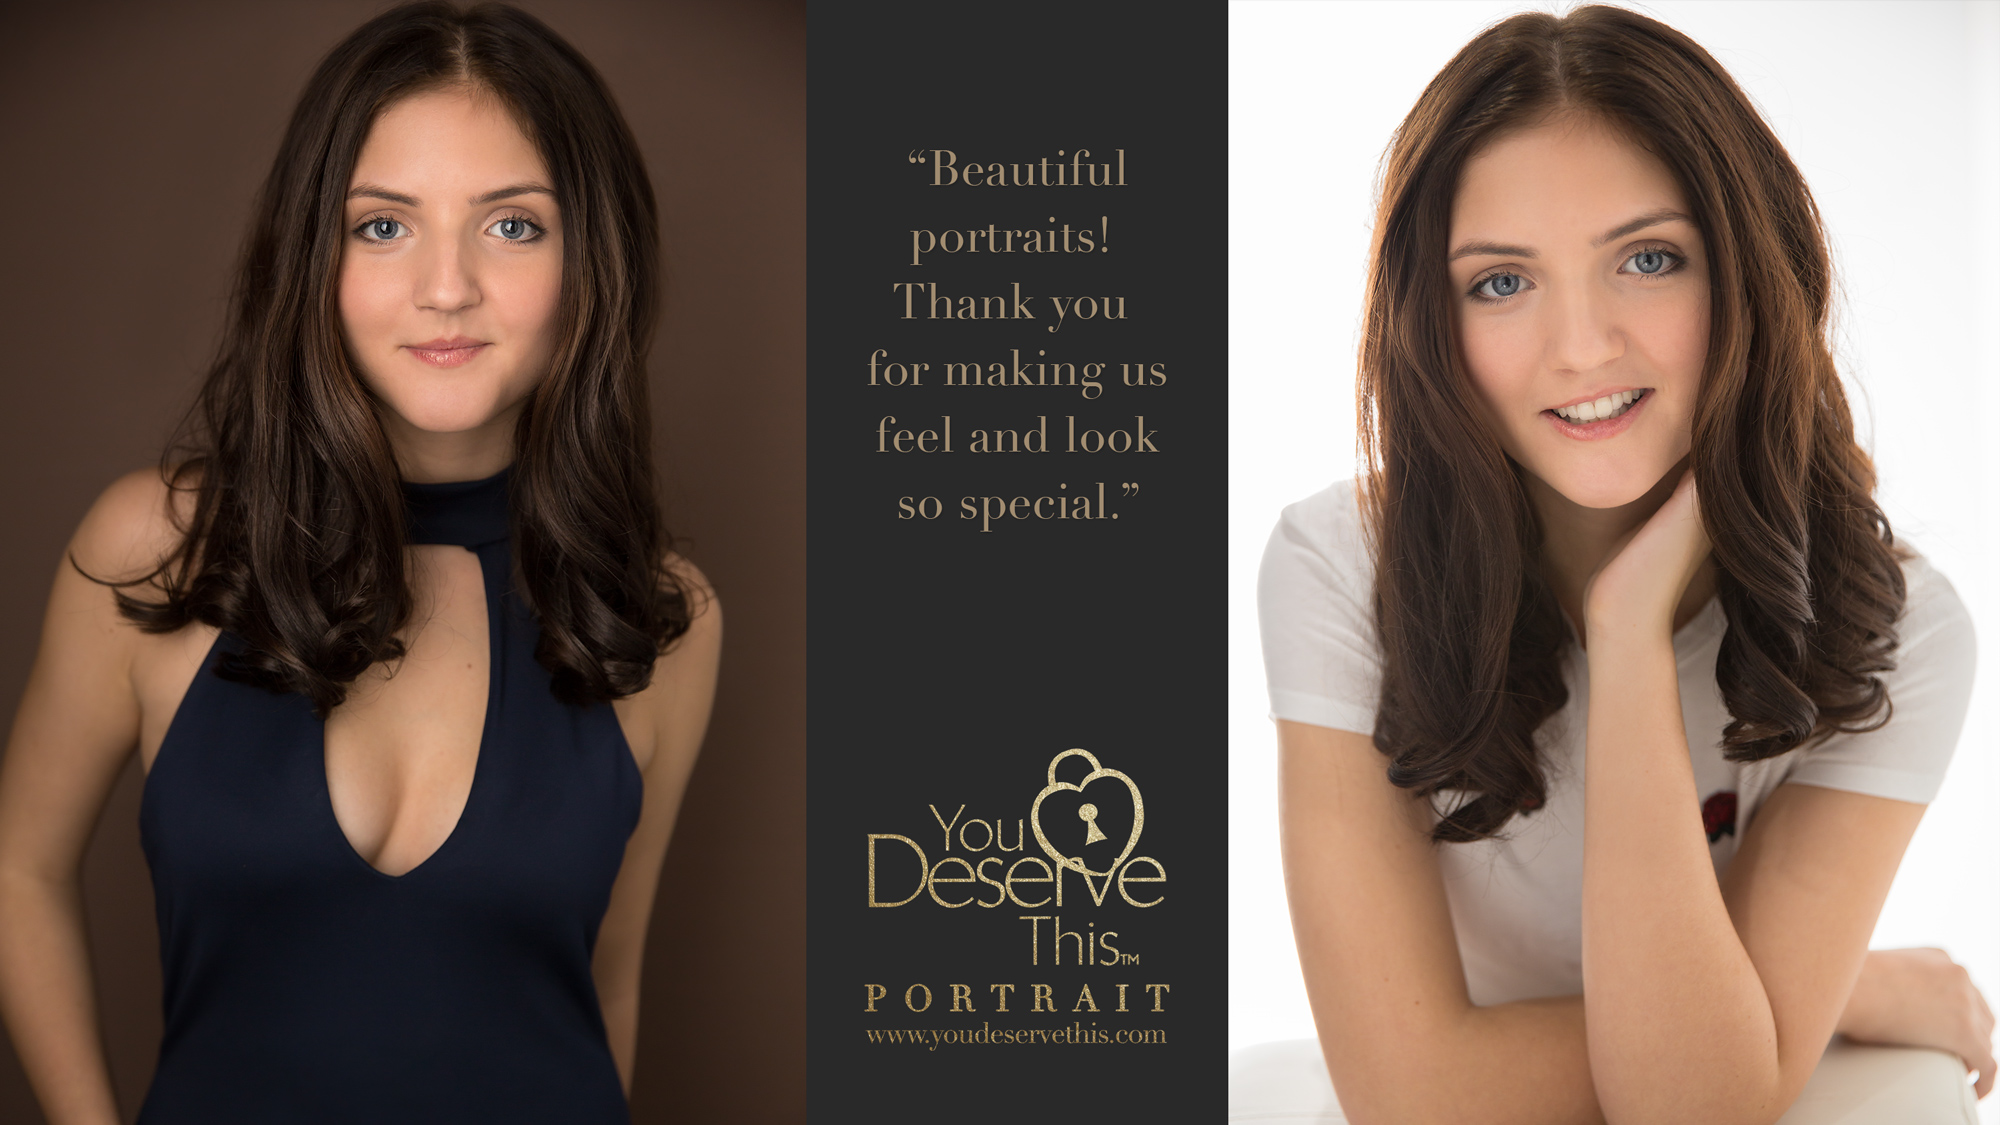 family makeover and photoshoot at YouDeserveThis Headshots, Makeover and Photography Studio Tadley Hampshire RG26 3RN